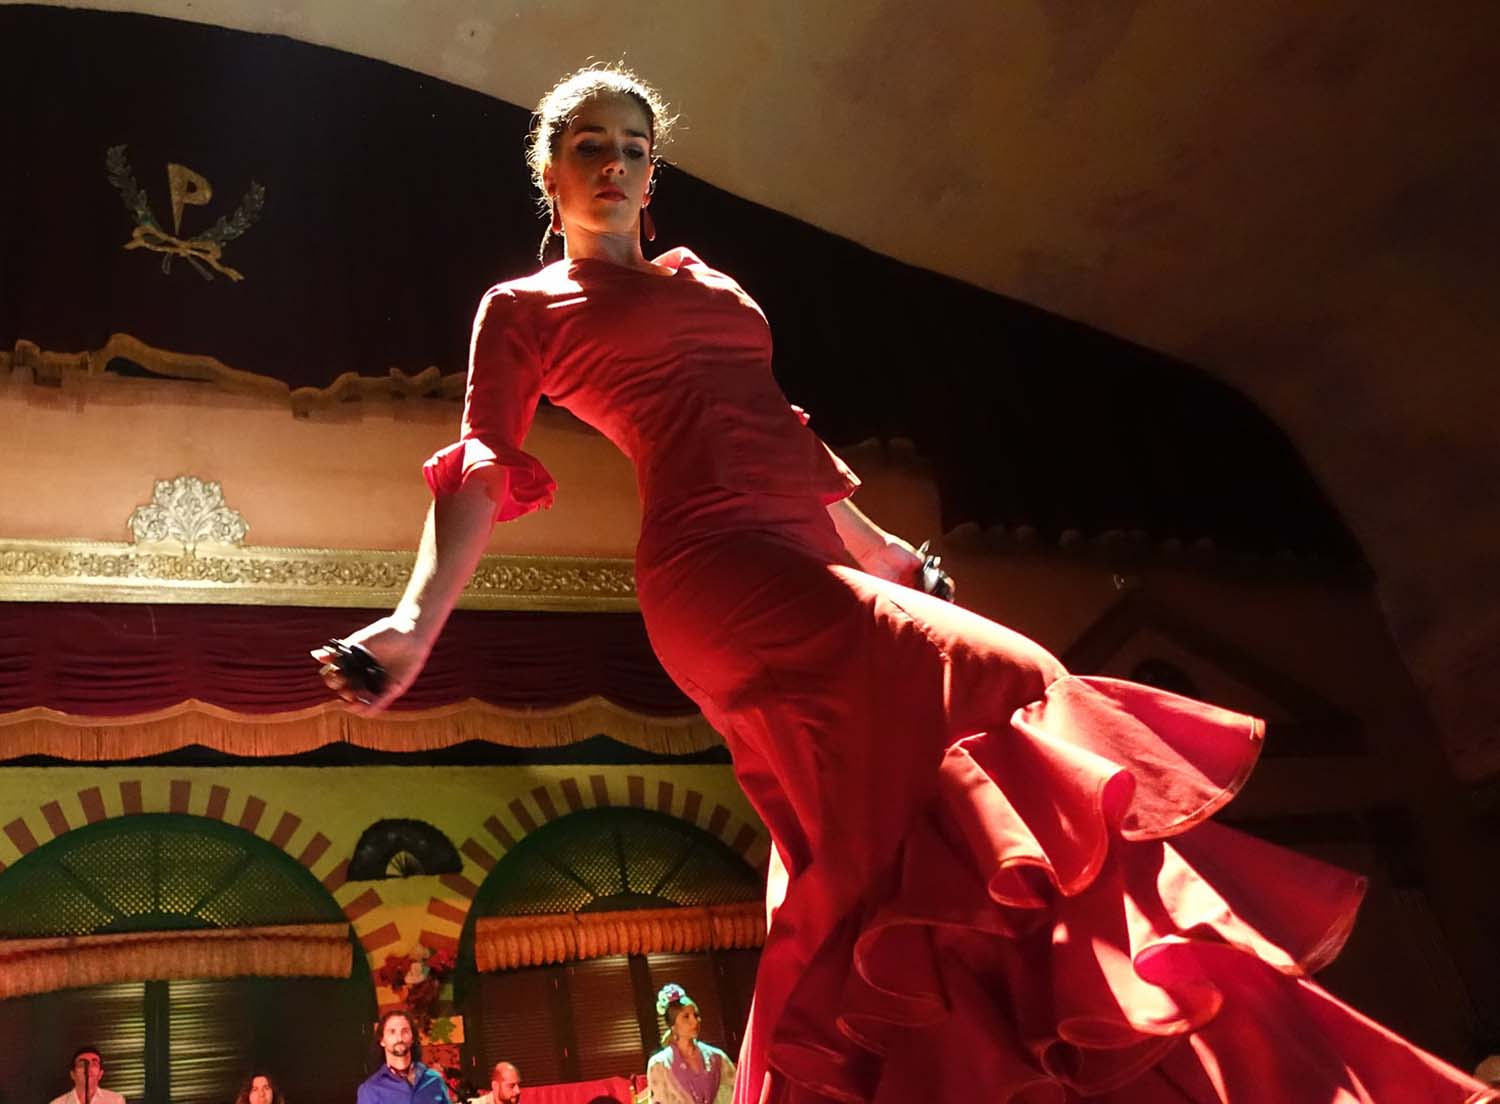 The Spectacular Flamenco